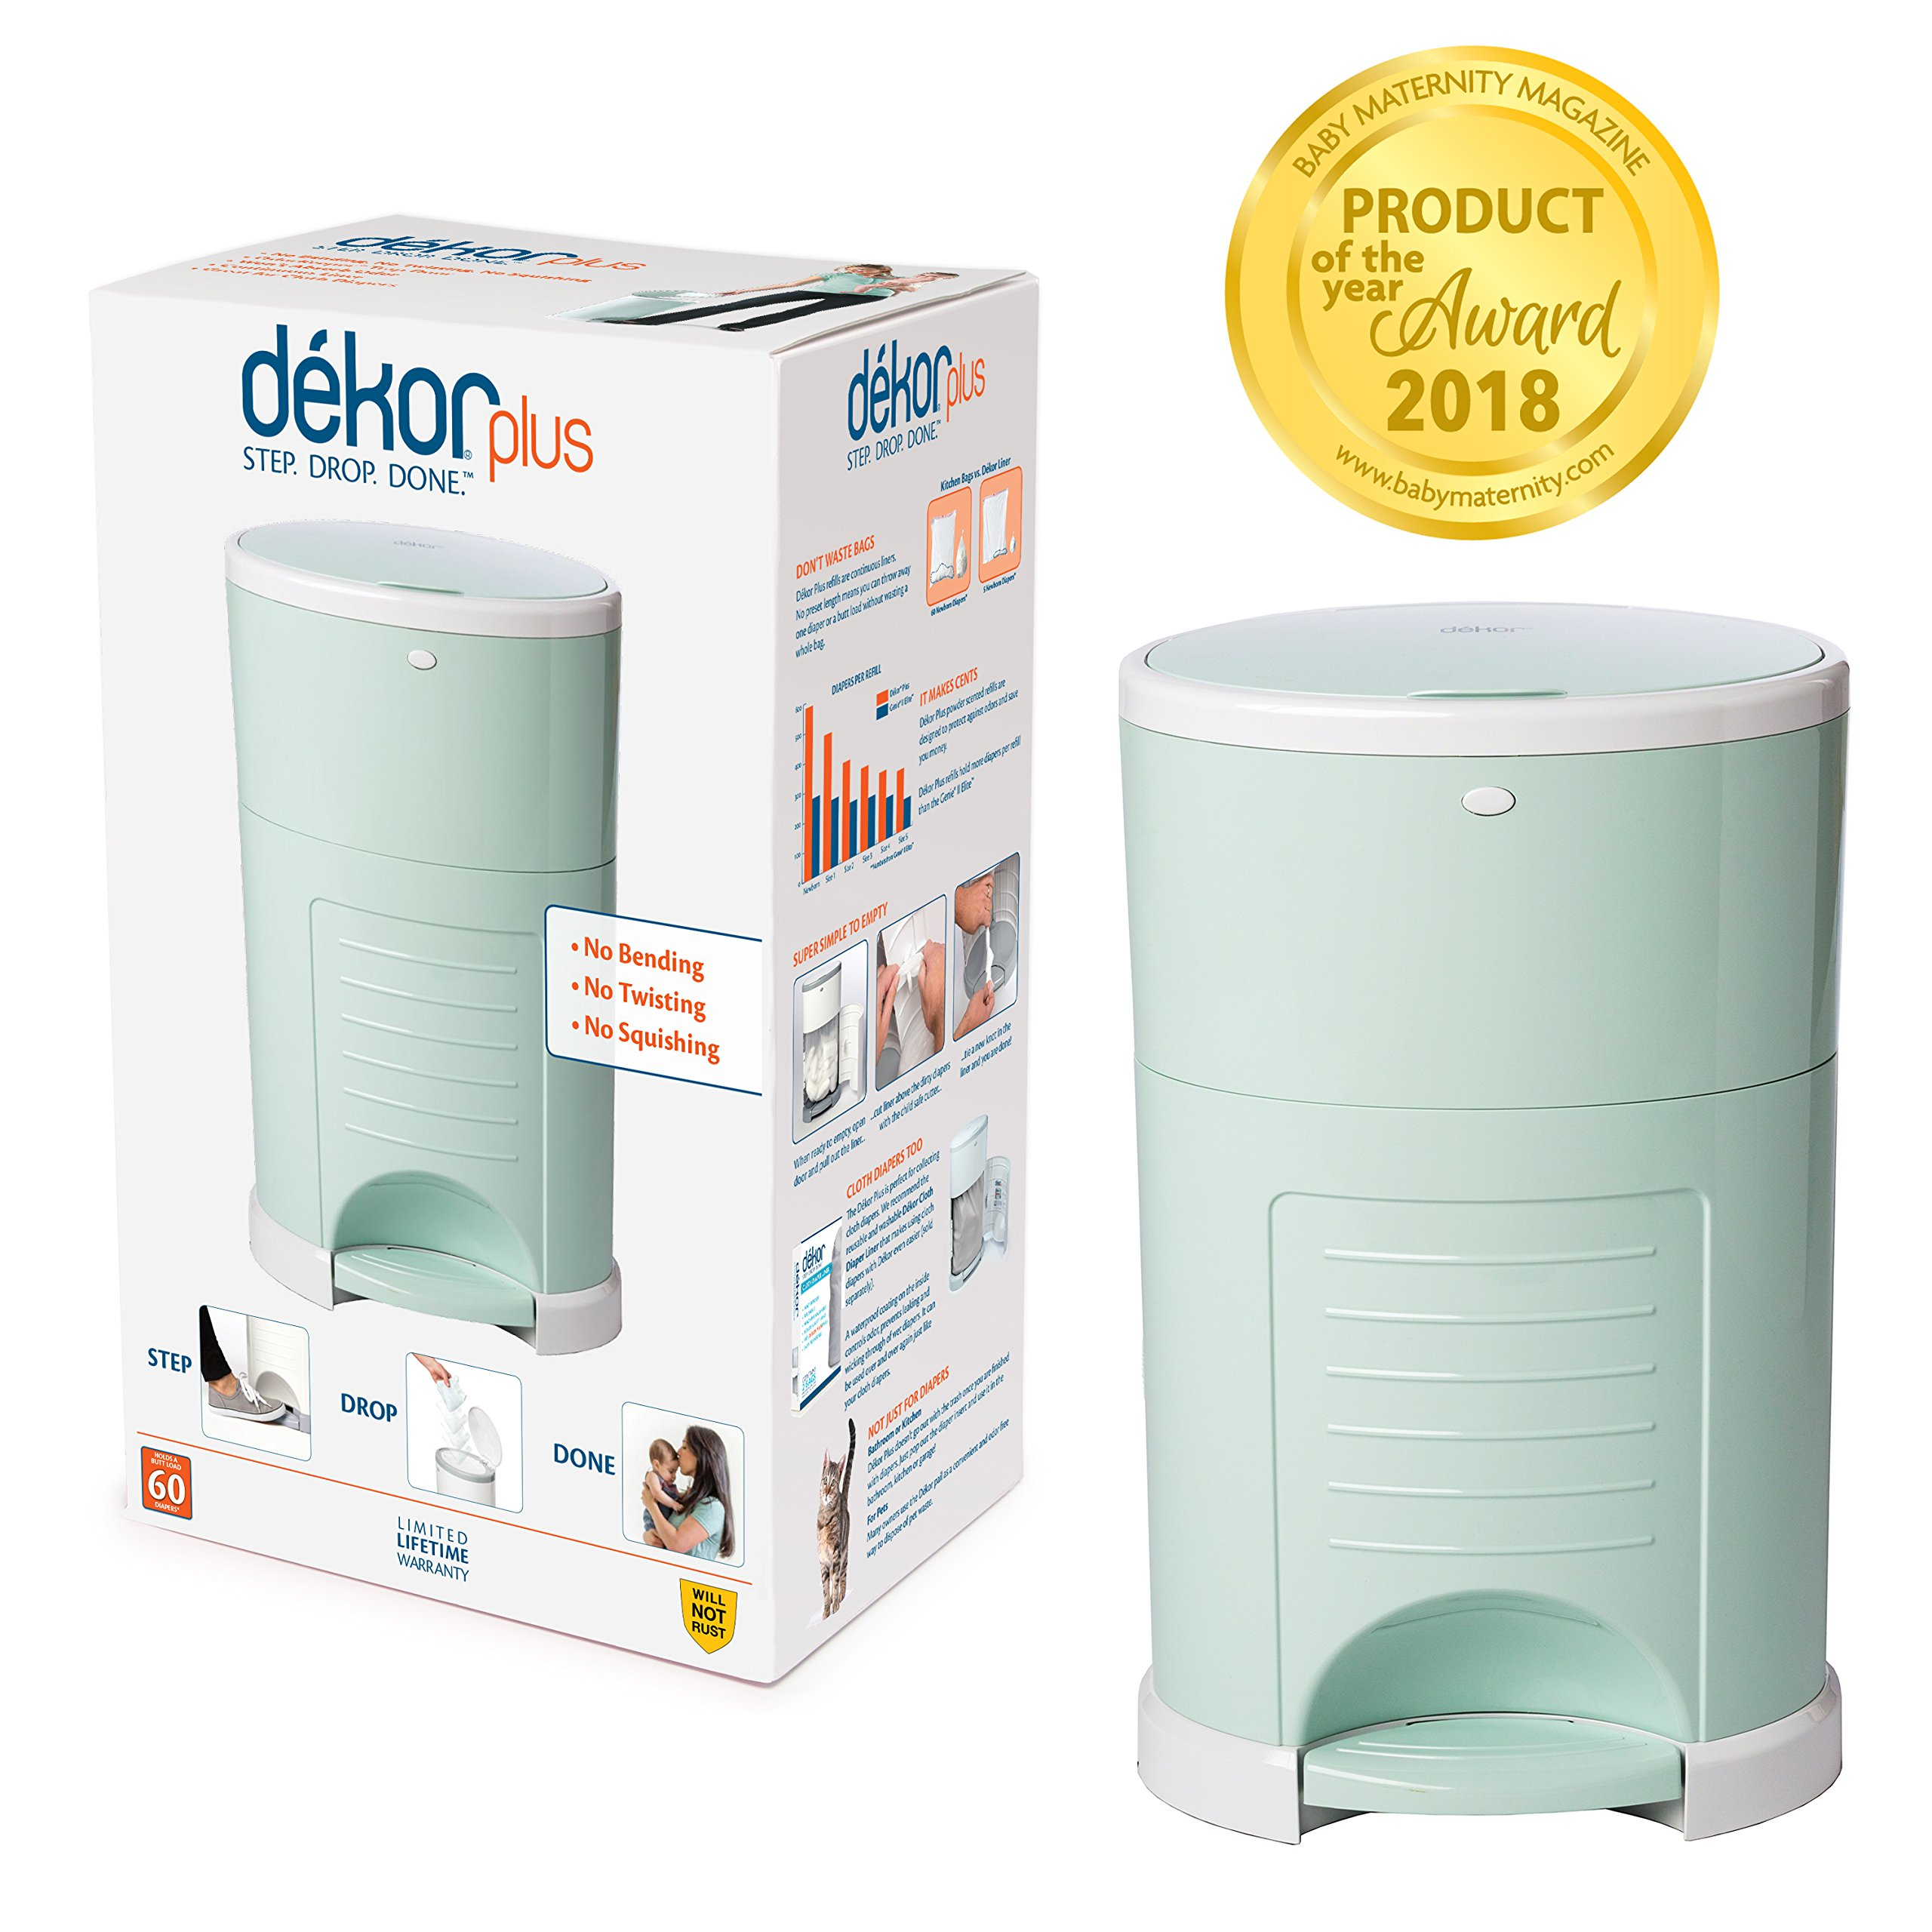 Dekor Plus Hands-Free Diaper Pail | Easiest to Use | Just Step. Drop. Done! | Pail Won't Absorb Odors/Rust | 20 Second Bag Change | Most Economical Refill System | Great for Cloth Diapers | Soft Mint by DEKOR (Image #1)